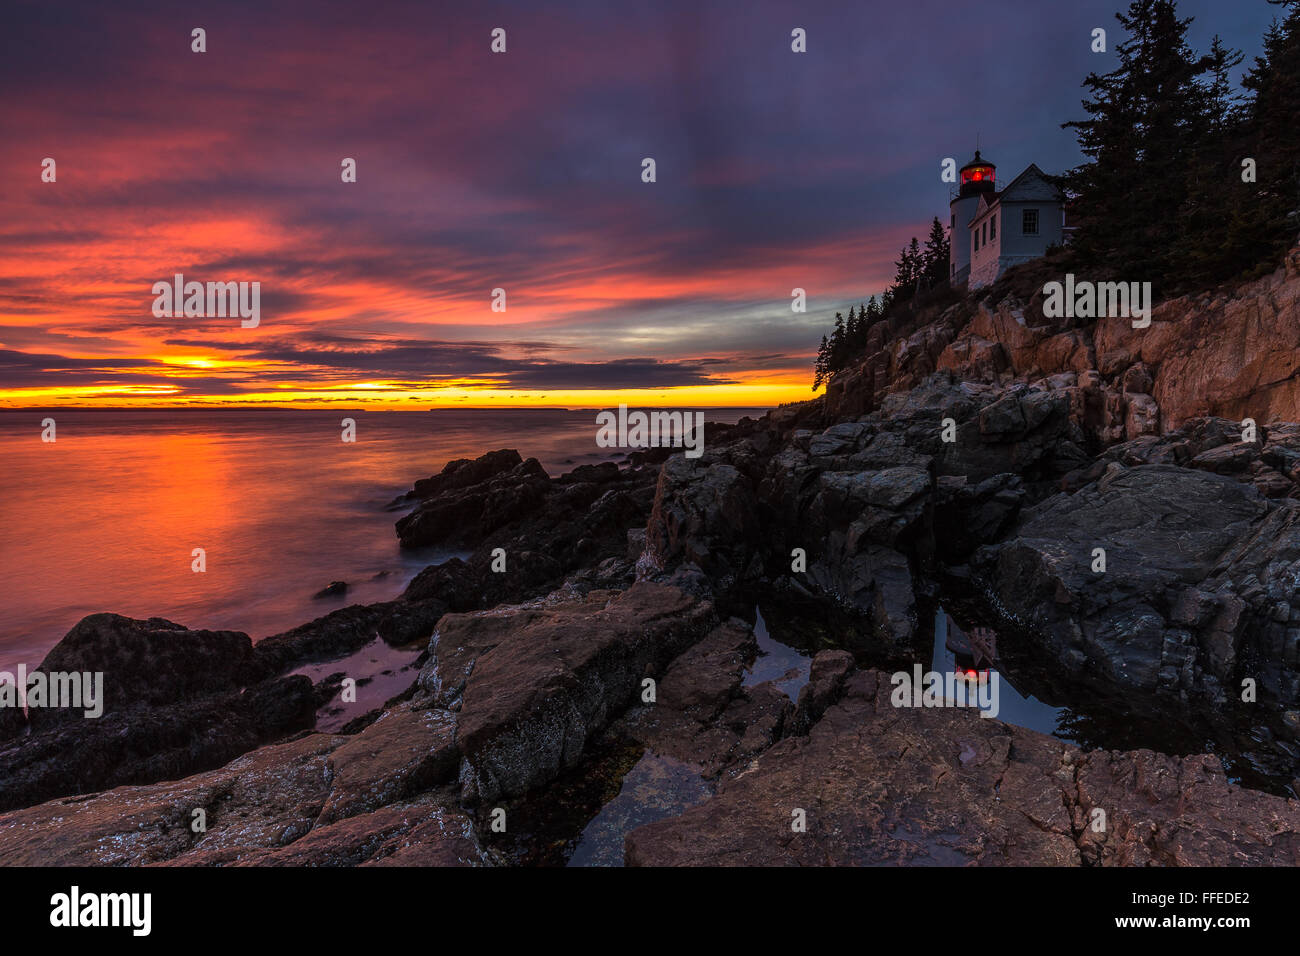 The iconic landmark, Bass Harbor Head Lighthouse reflected in a tidepool at sunset in Acadia National Park, Mount Stock Photo